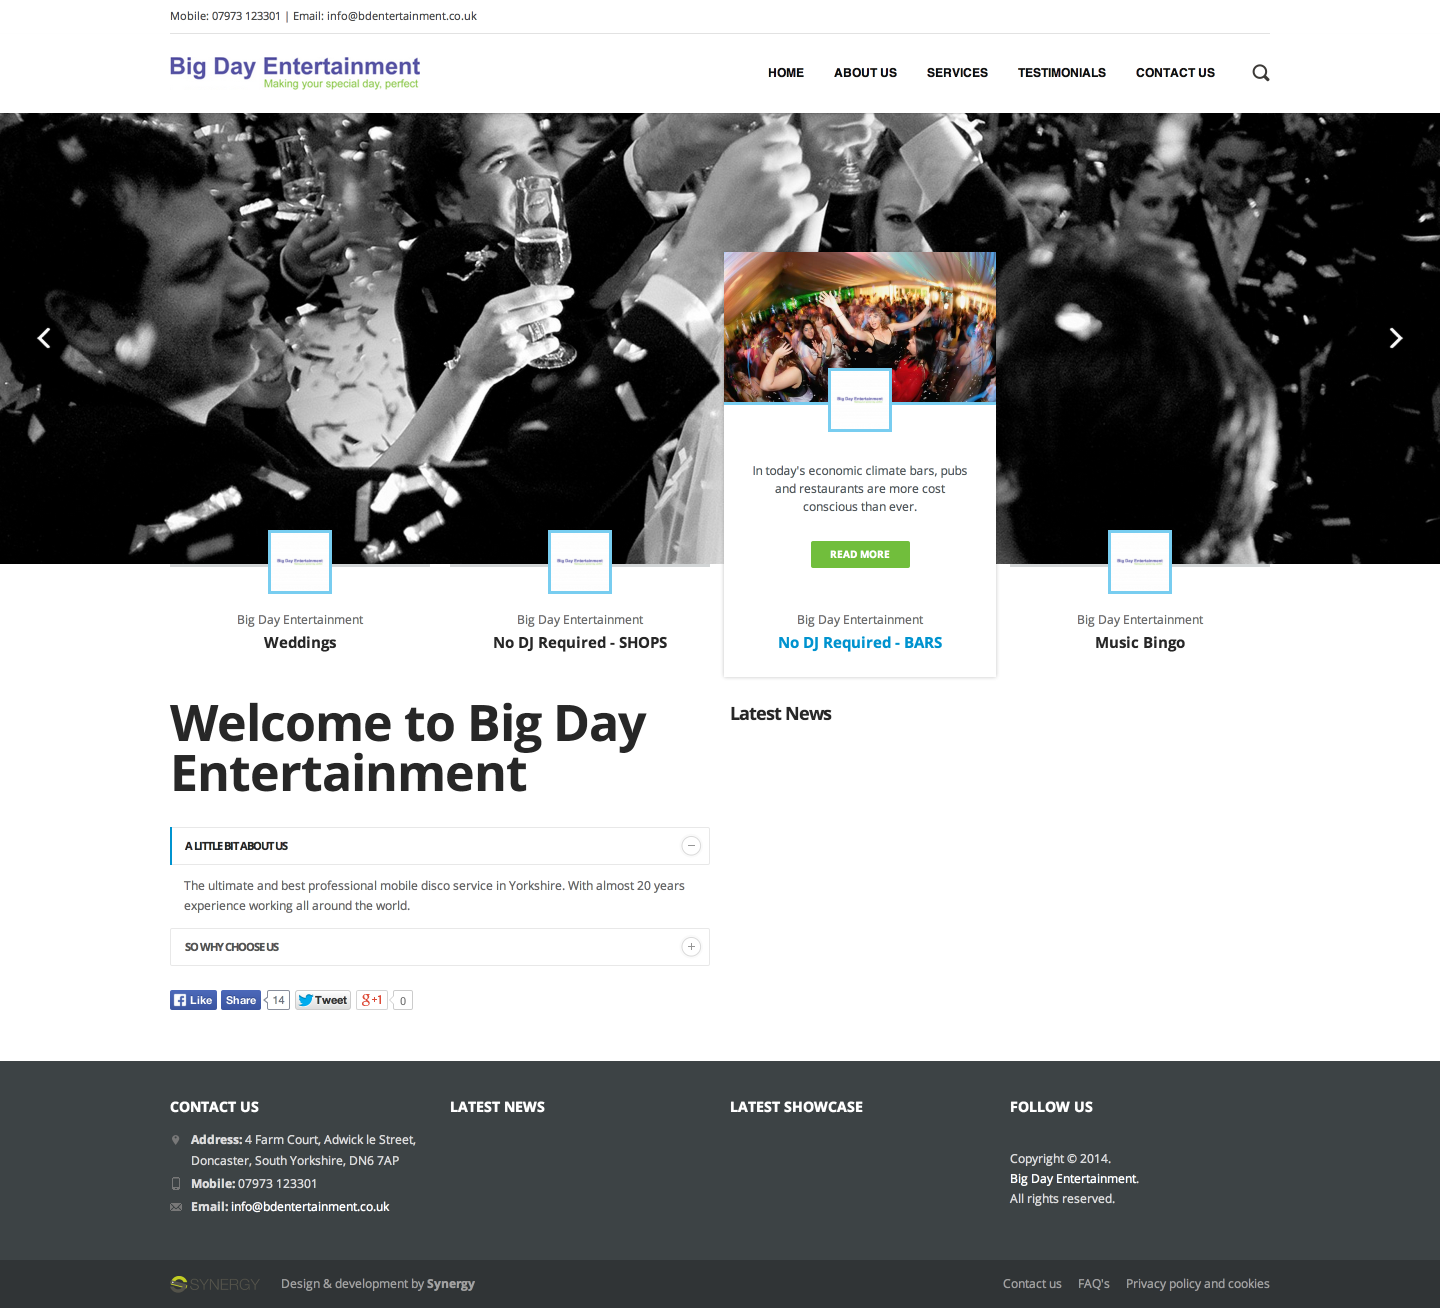 Big Day Entertainment web design & development